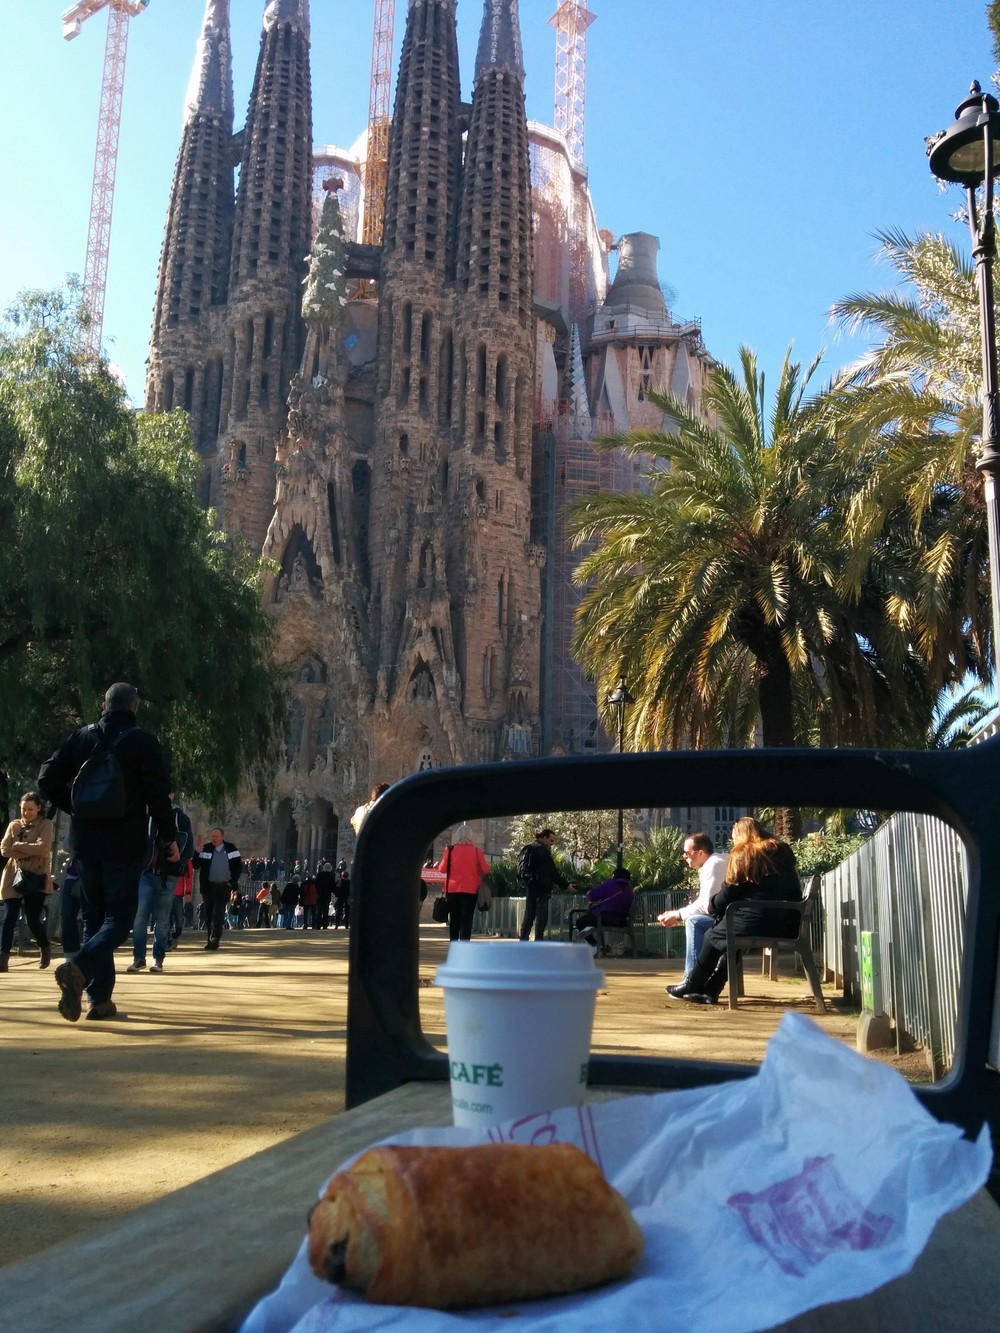 One of my chocolate croissant and coffee breaks in front of the Sagrada Familia